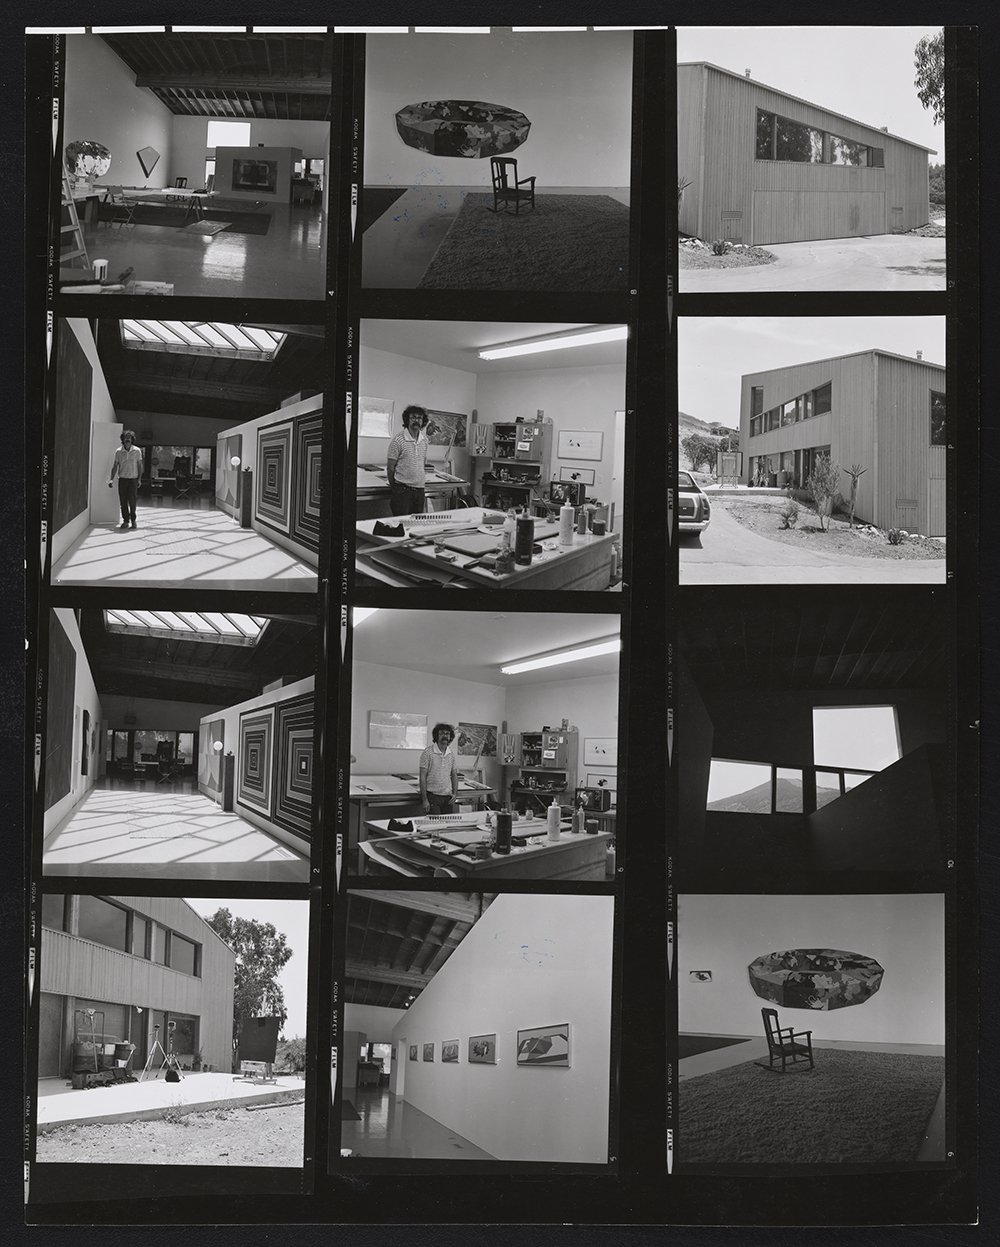 Black and white contact sheet with images of a modern home and painting studio